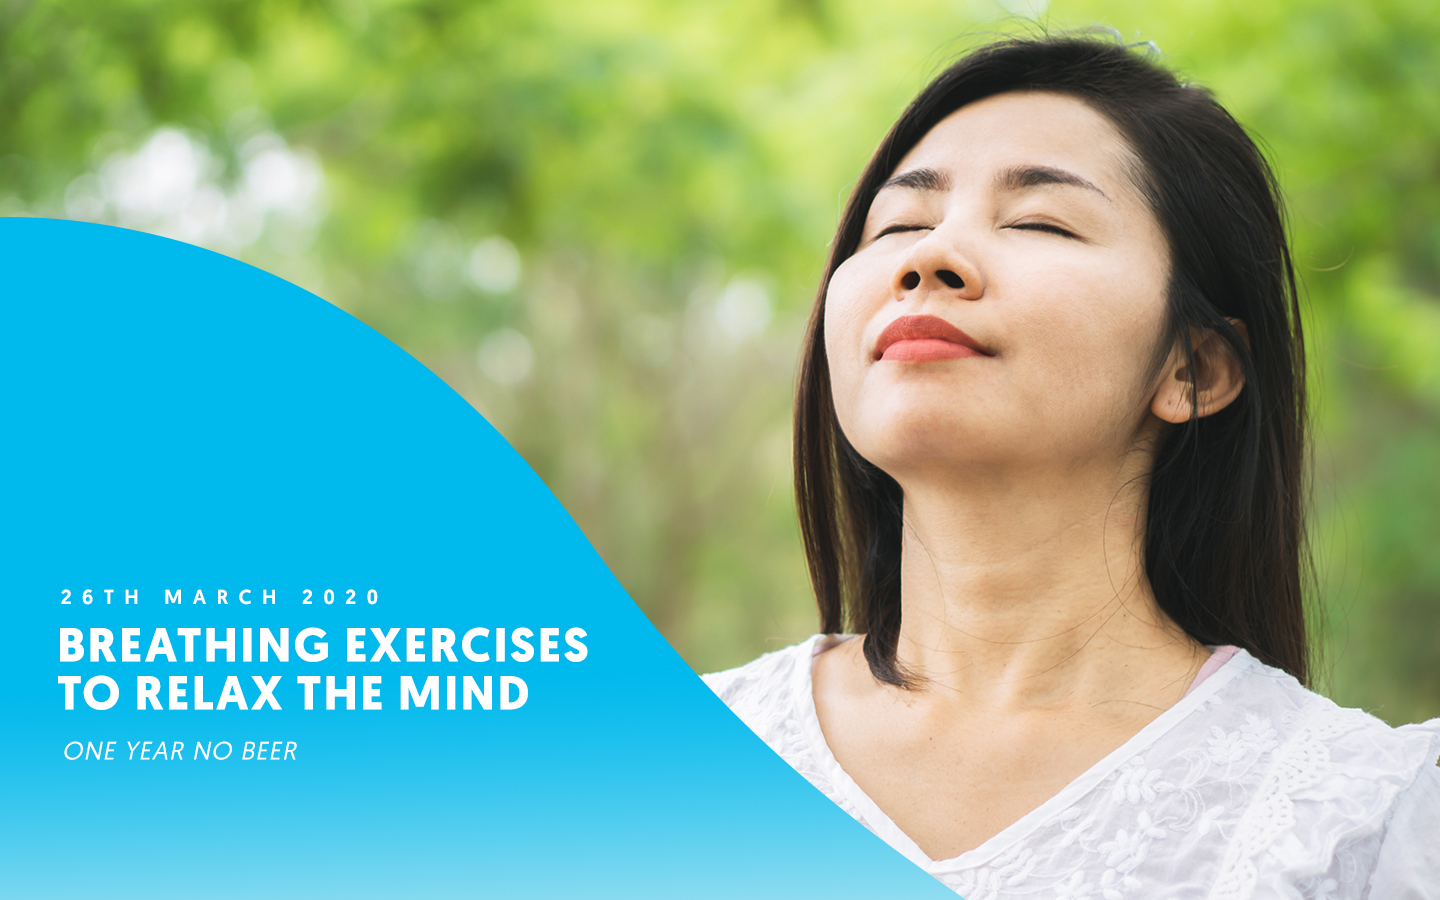 Breathing exercises to relax the mind